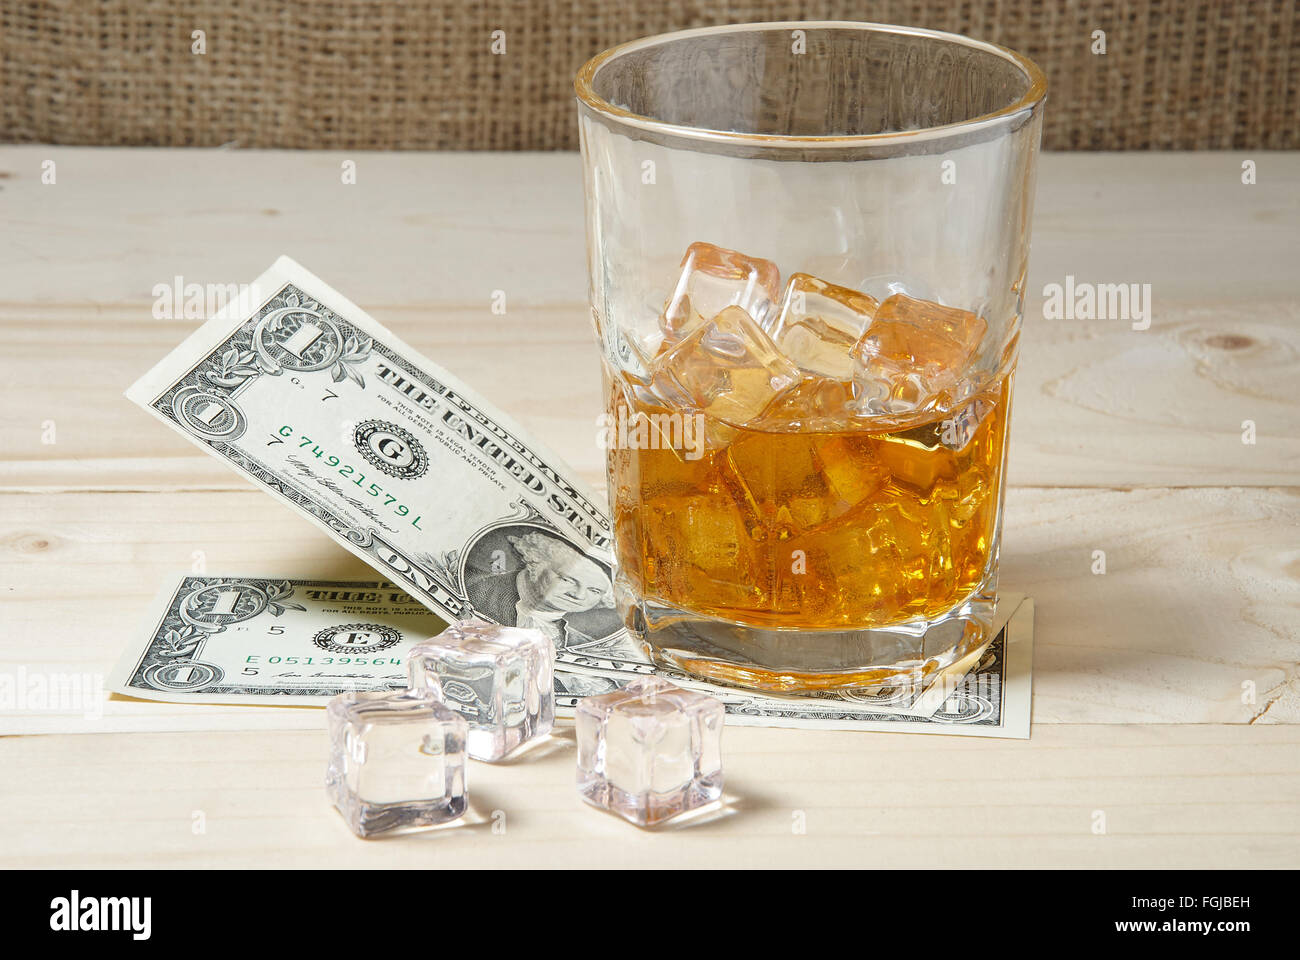 Dollars and glass of whiskey with ice on wooden table - Stock Image